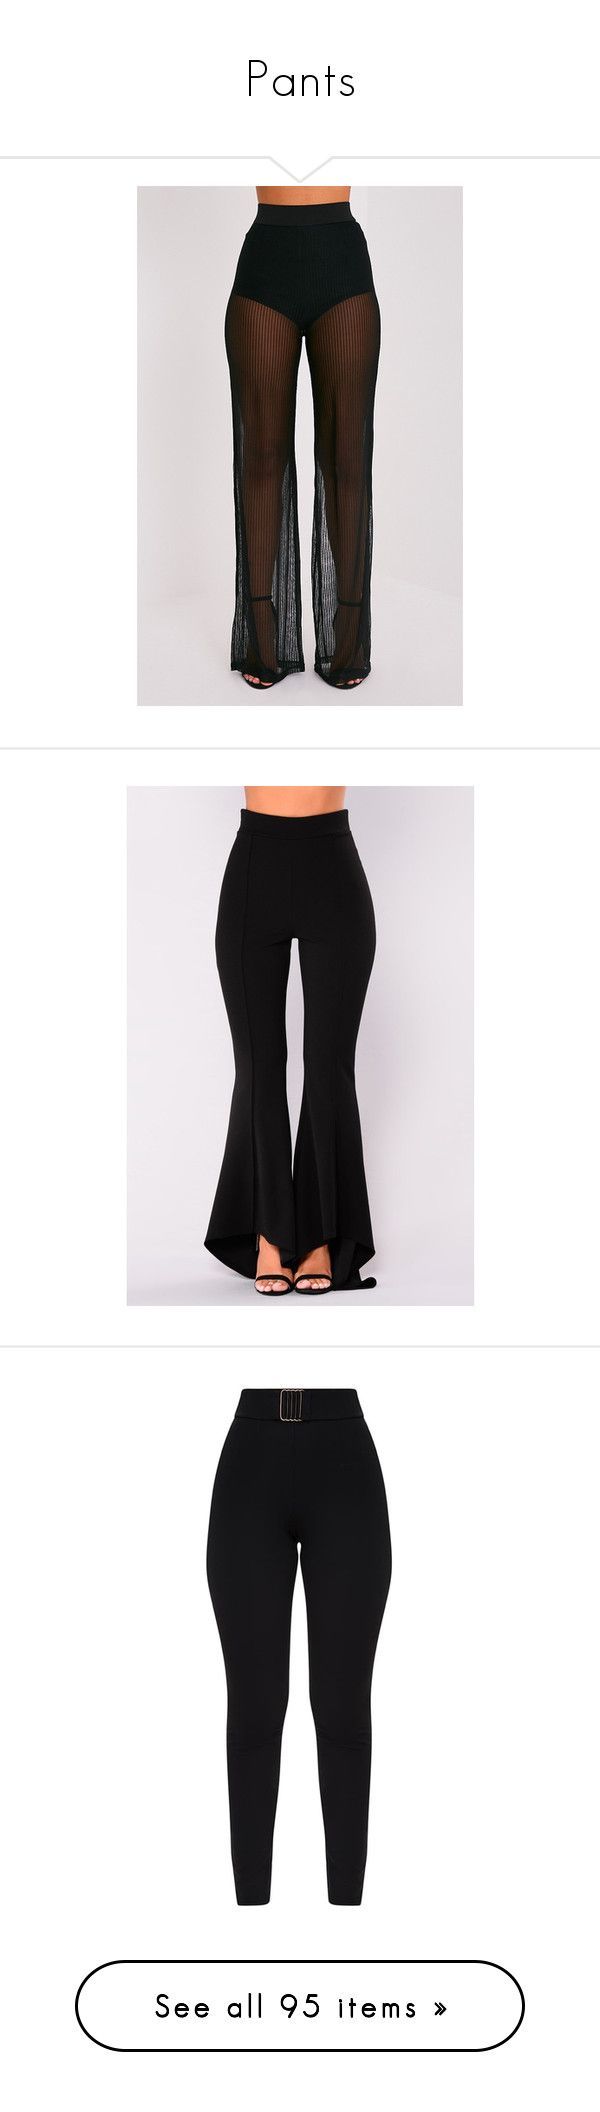 """""""Pants"""" by queen-elenaldntwn ❤ liked on Polyvore featuring pants, sheer wide leg pants, striped wide leg trousers, transparent pants, sheer trousers, striped wide leg pants, bottoms, trousers, alaïa and fitted pants"""